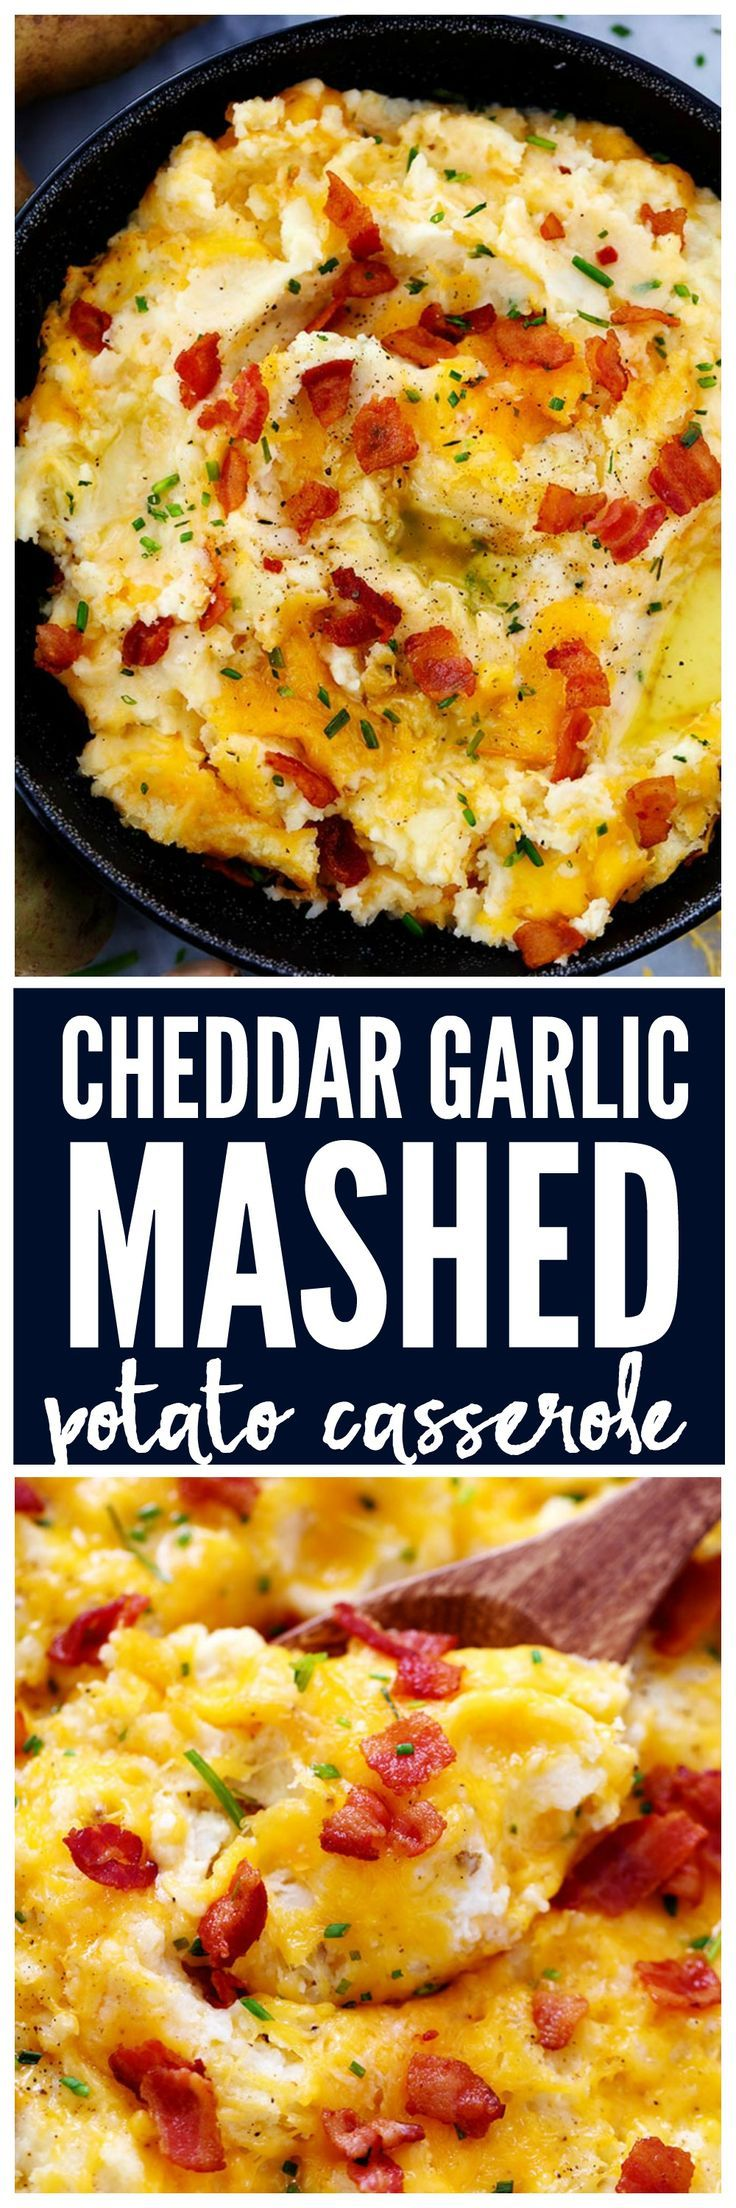 25+ best ideas about Grilled pork chops on Pinterest Grill pork chops, Pork marinade and This best